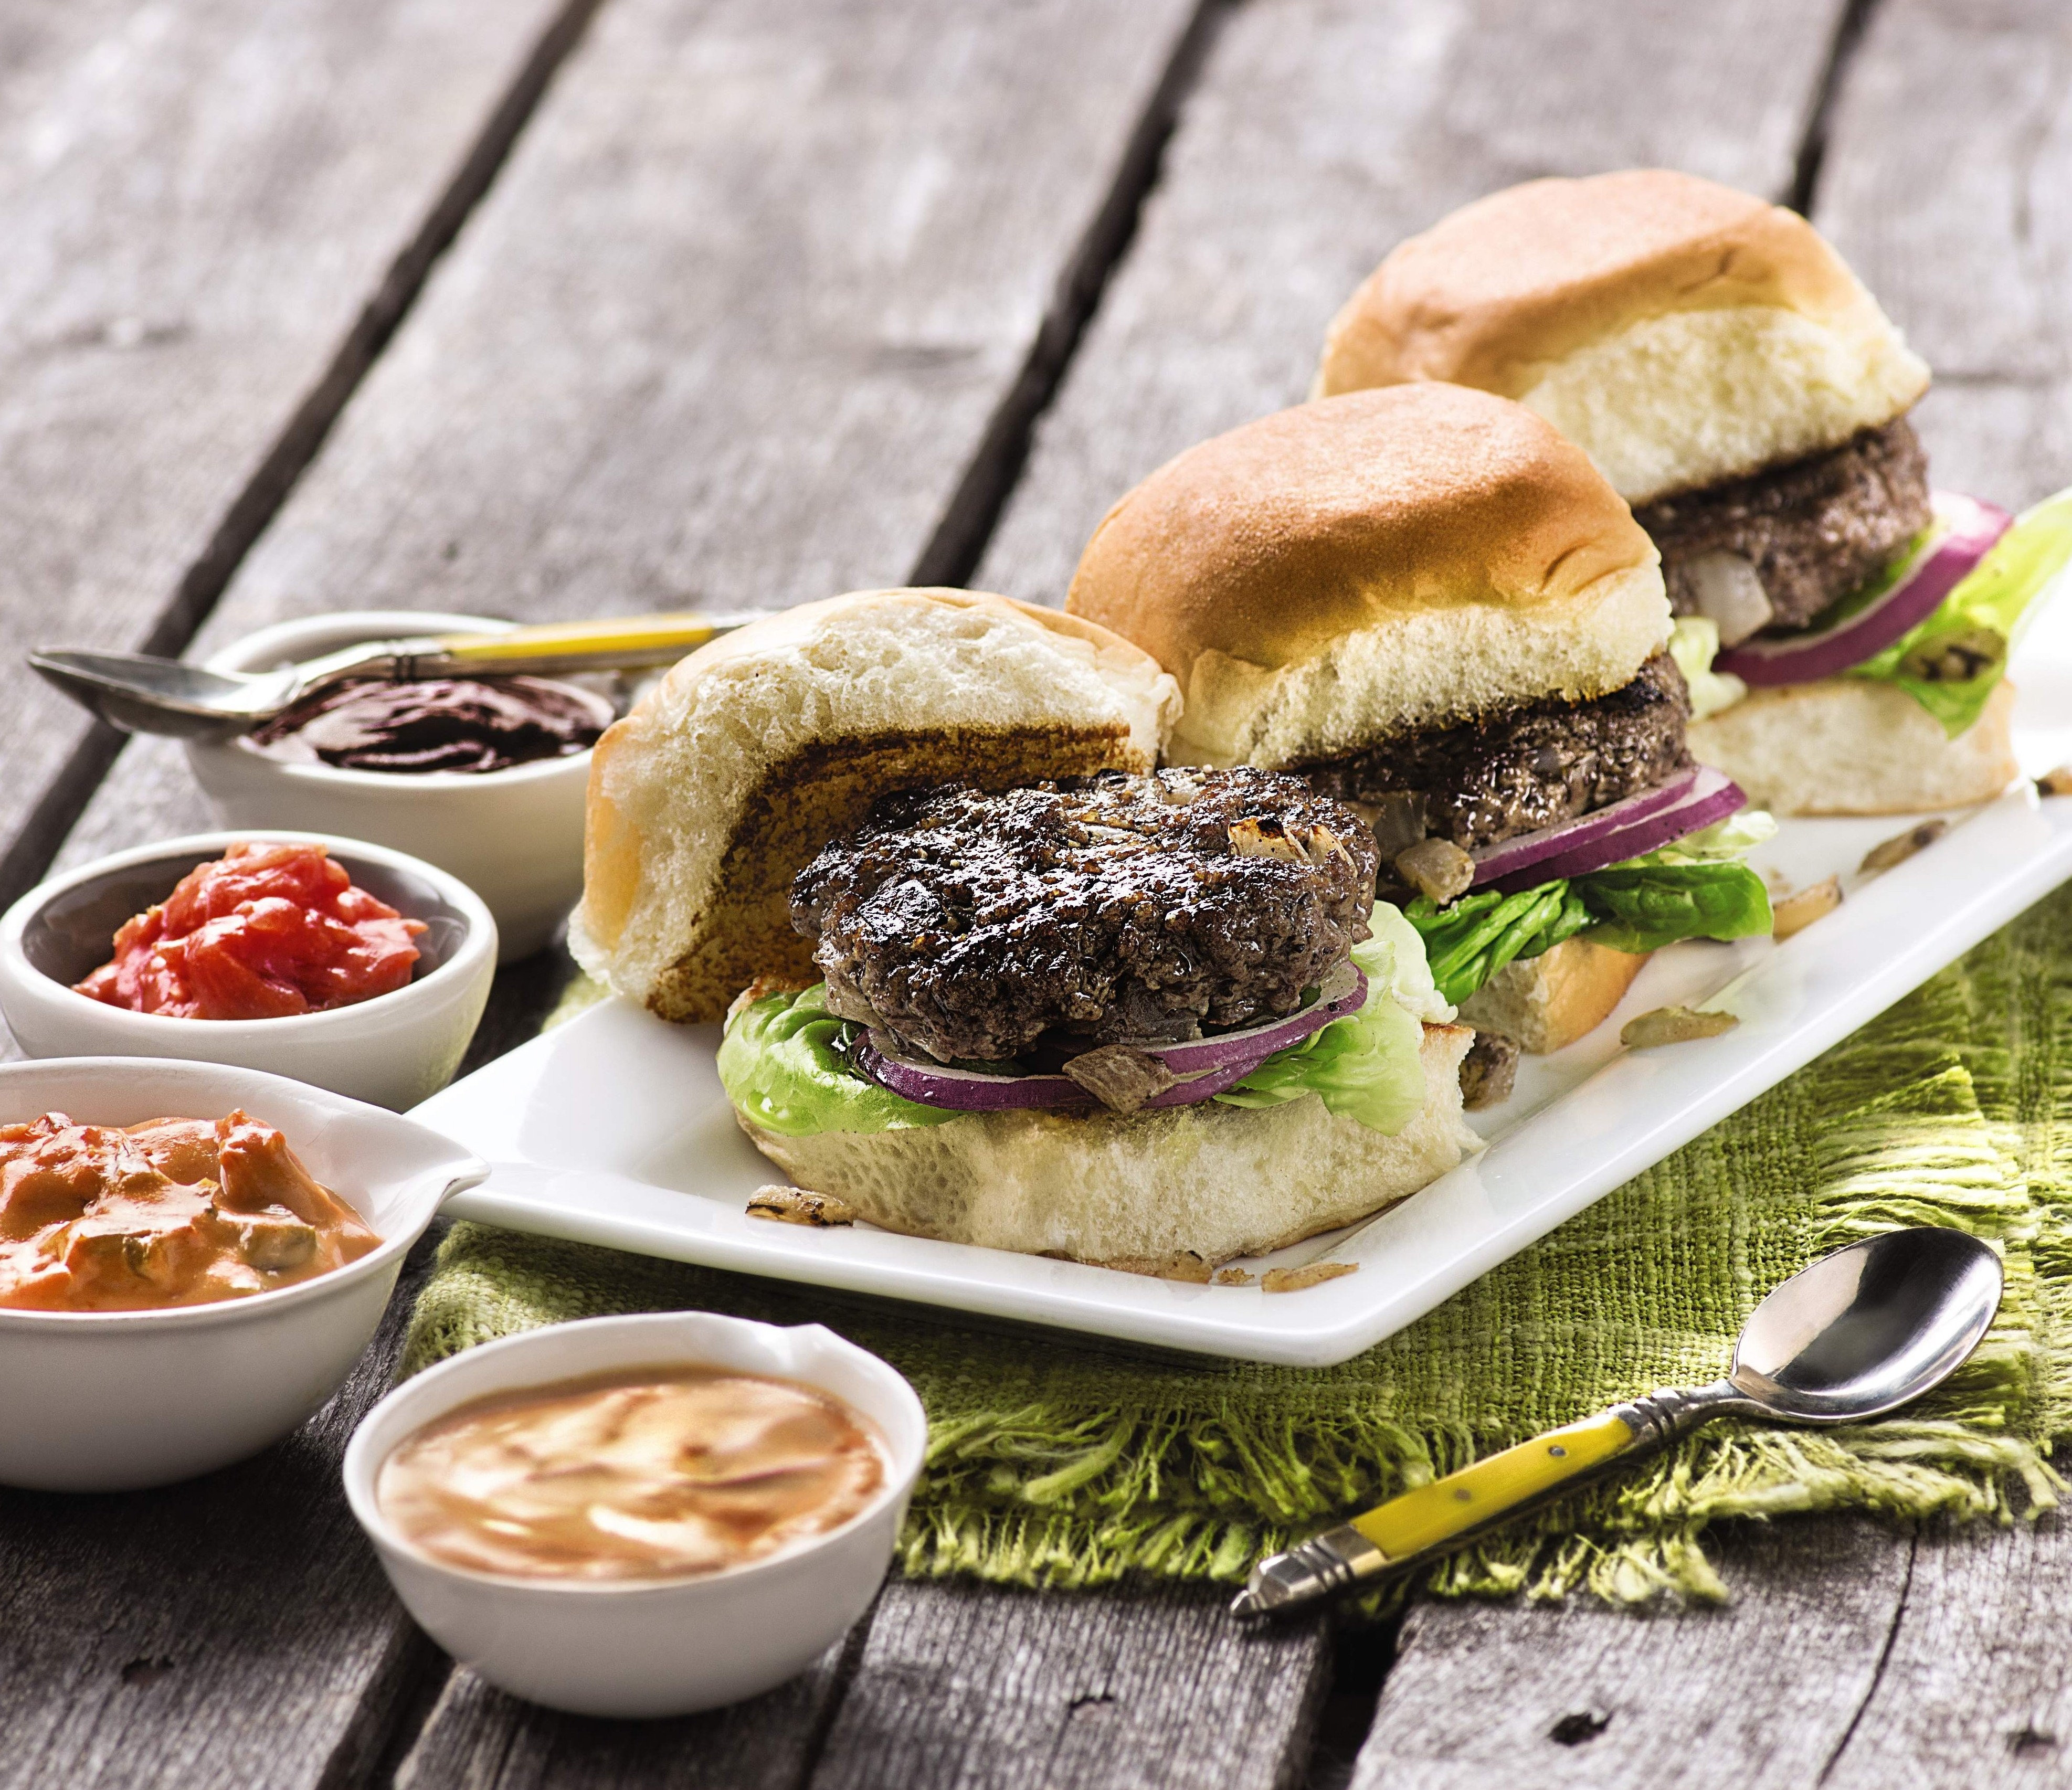 Grass fed ground beef burgers with various condiments.